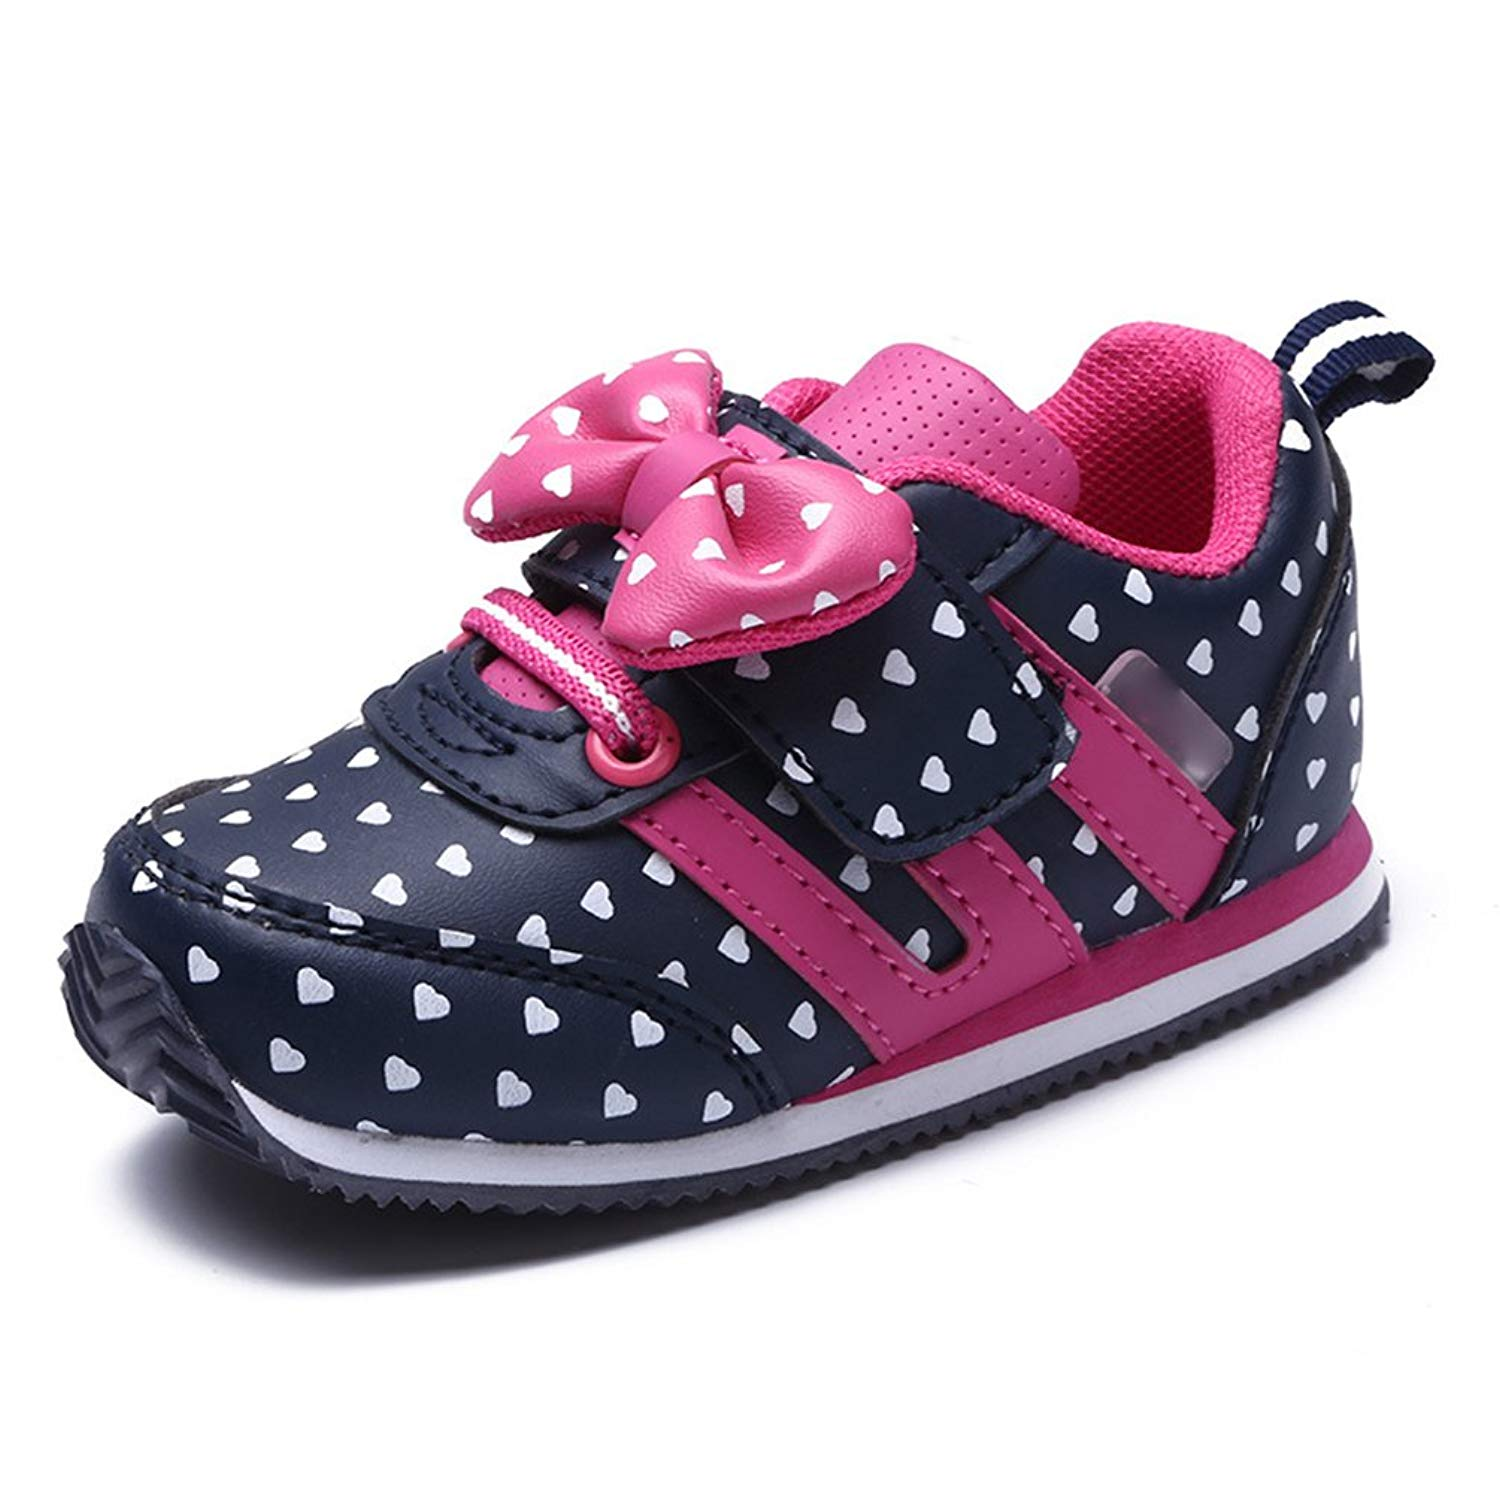 5be89fef45cf Little Girls Shoes Bowknot Butterfly Tie Baby Toddler Shoes Casual  Breathable Velcro Princess Sneakers Cotton Shoes